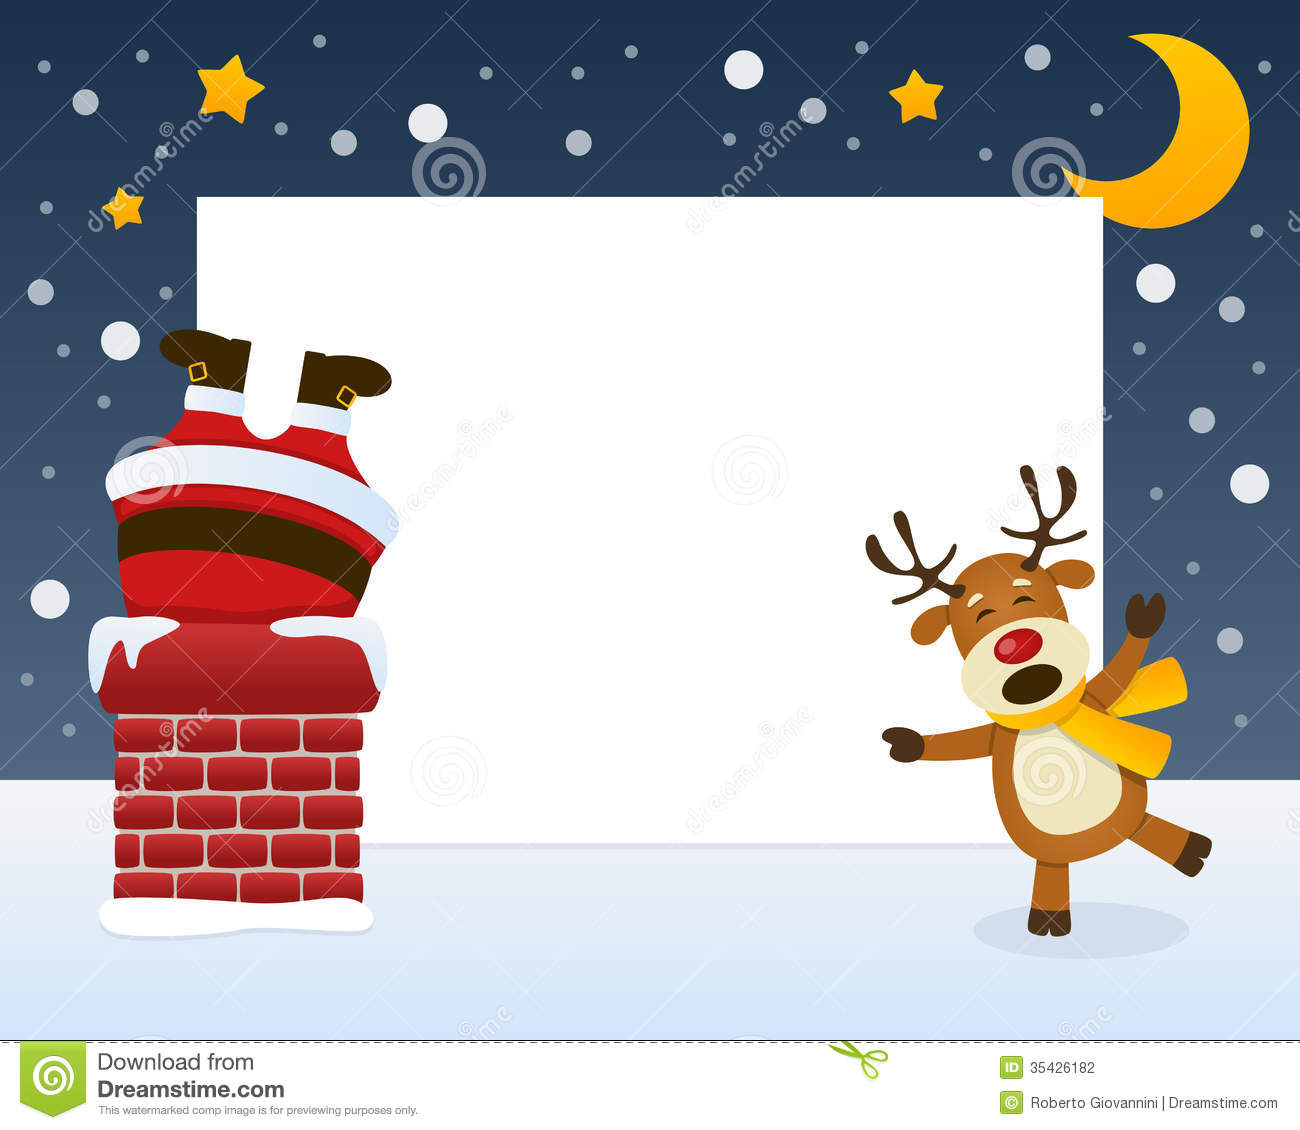 Santa claus in the chimney frame stock photography image - Marco de chimenea ...